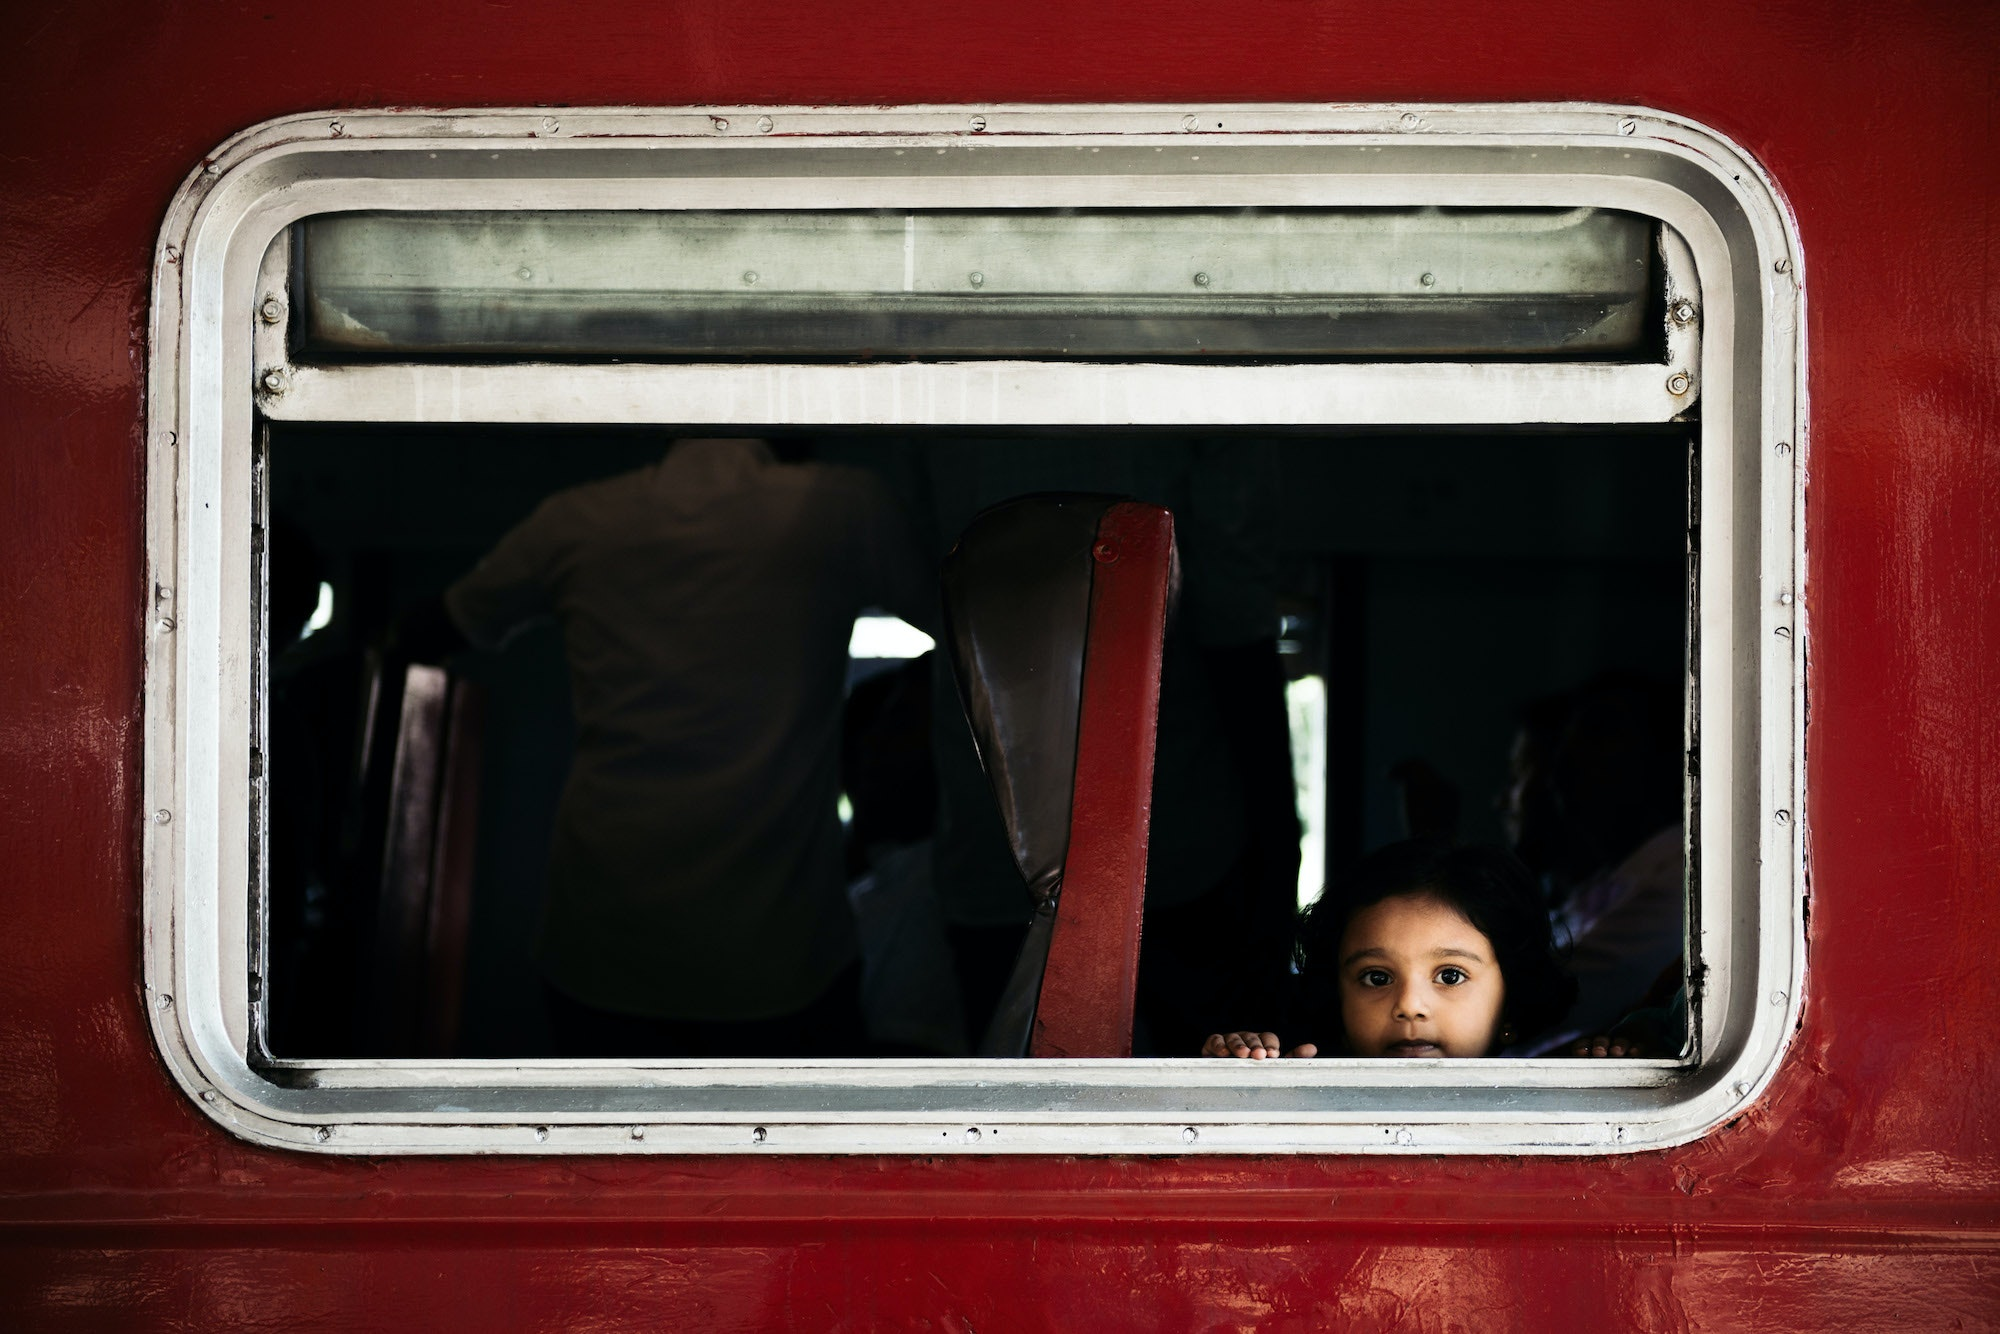 """""""This little girl's gaze melted my heart,"""" Rudd says. """"I waved, she blushed, we smiled, and our trains took off in opposite directions."""""""